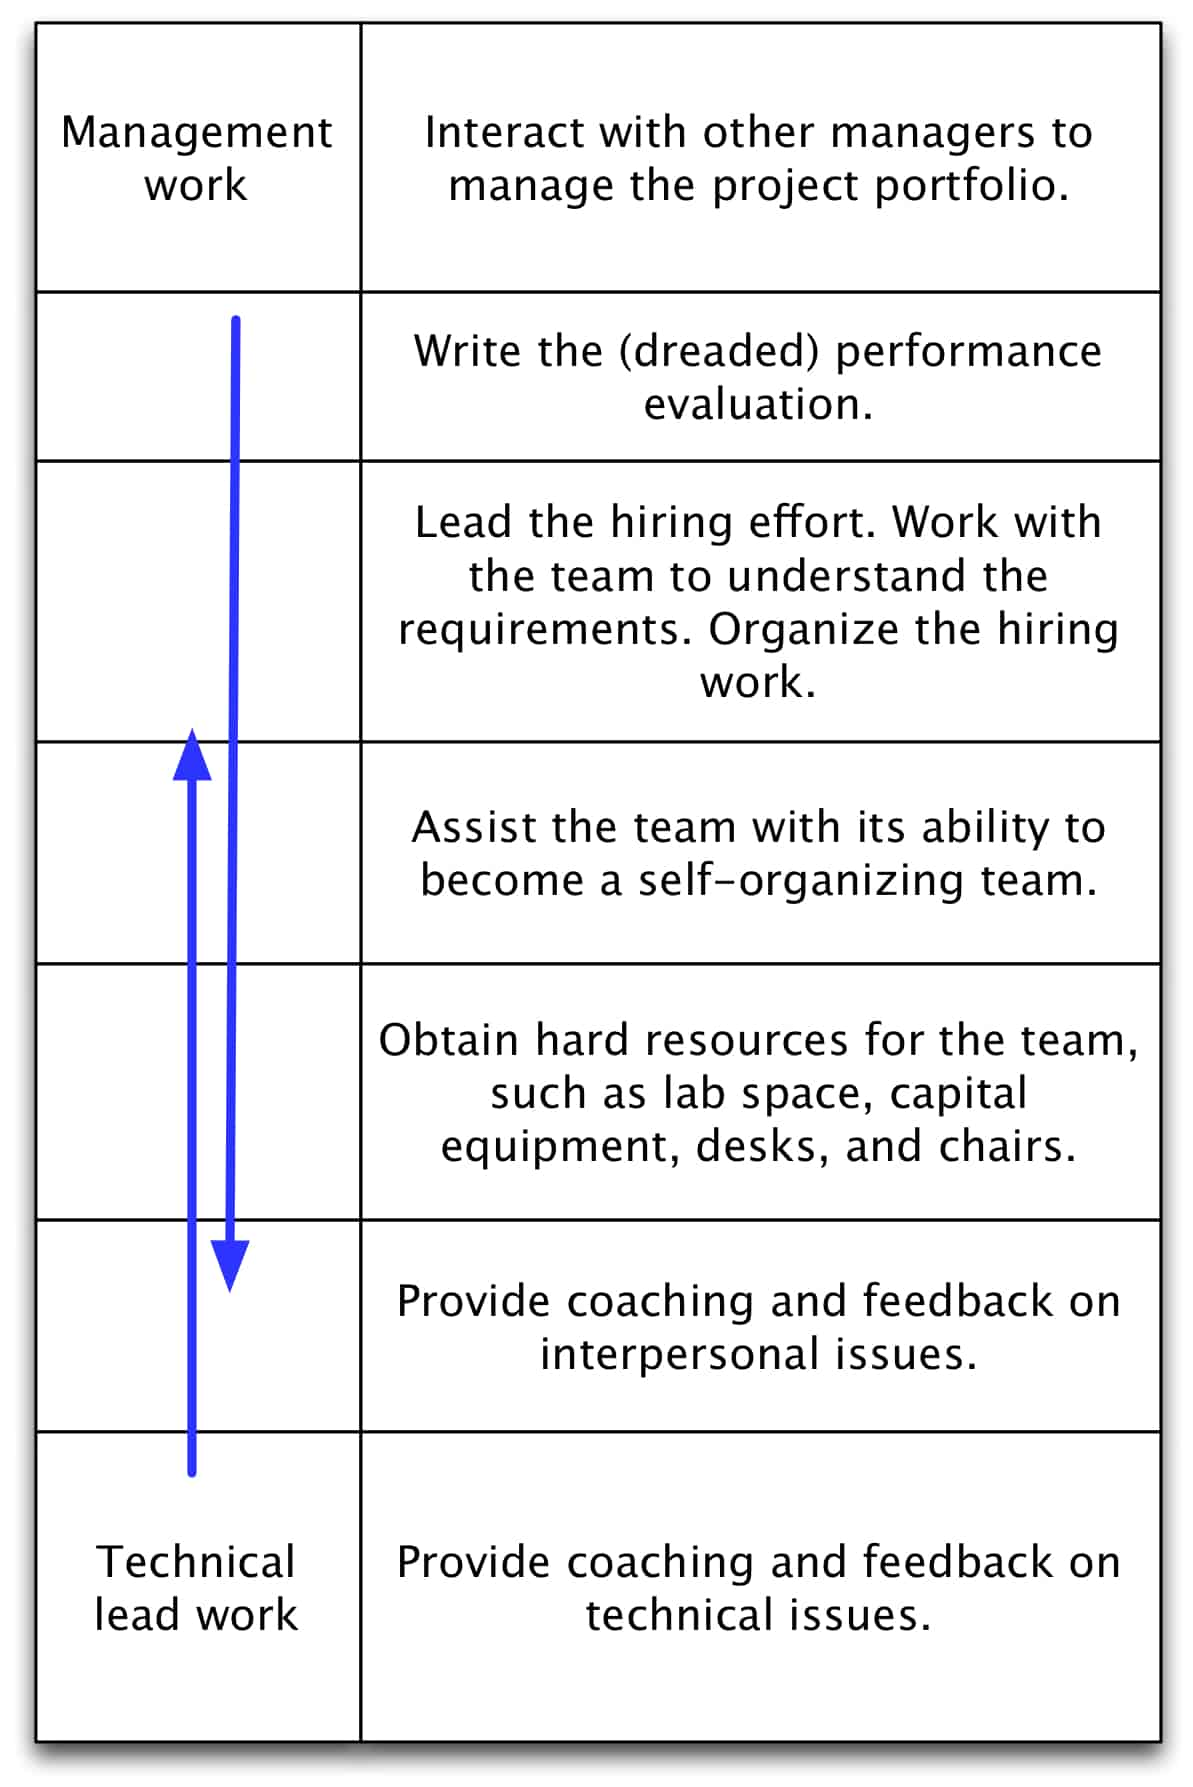 management myth i must promote the best technical person to figure 1 the continuum of technical lead work to management work